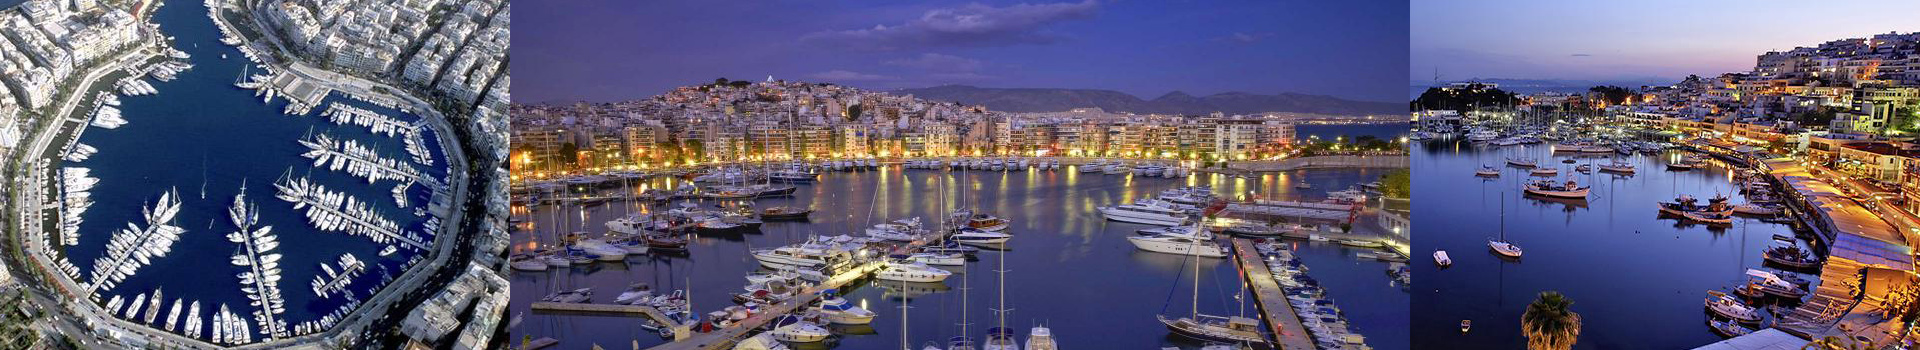 Pireaus City marina